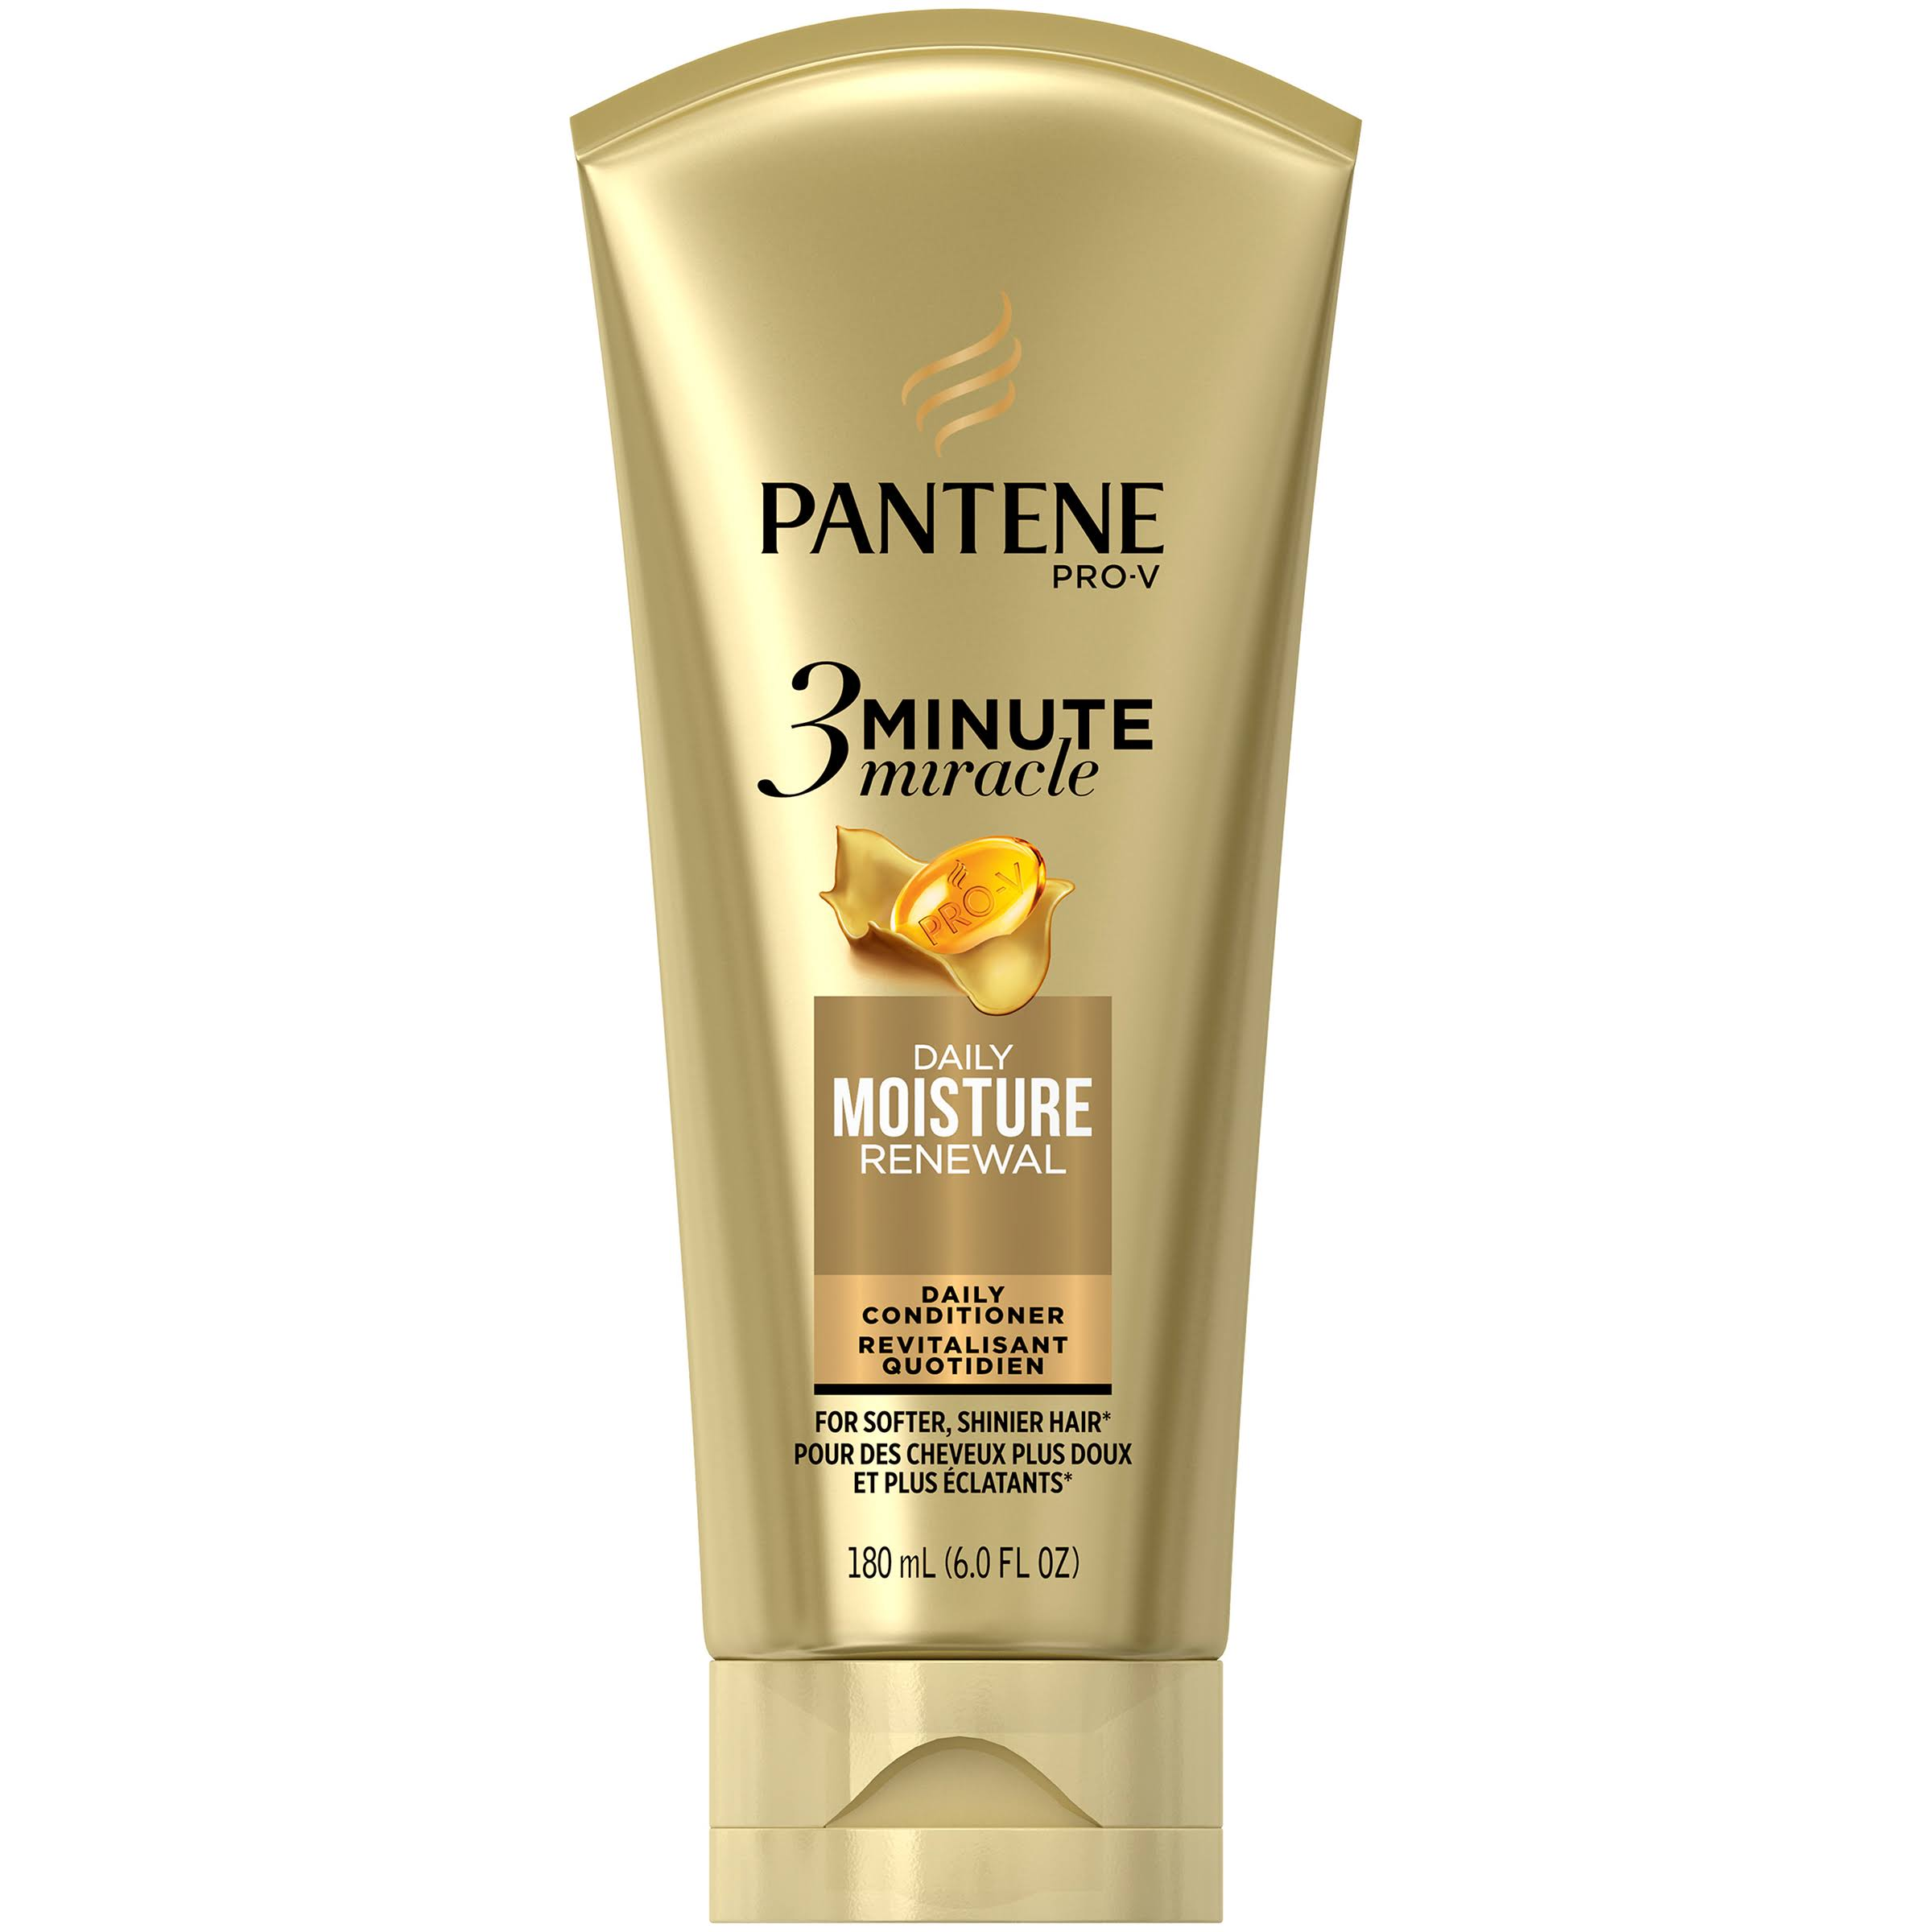 Pantene Pro V 3 Minute Miracle Moisture Renewal Deep Conditioner - 6oz